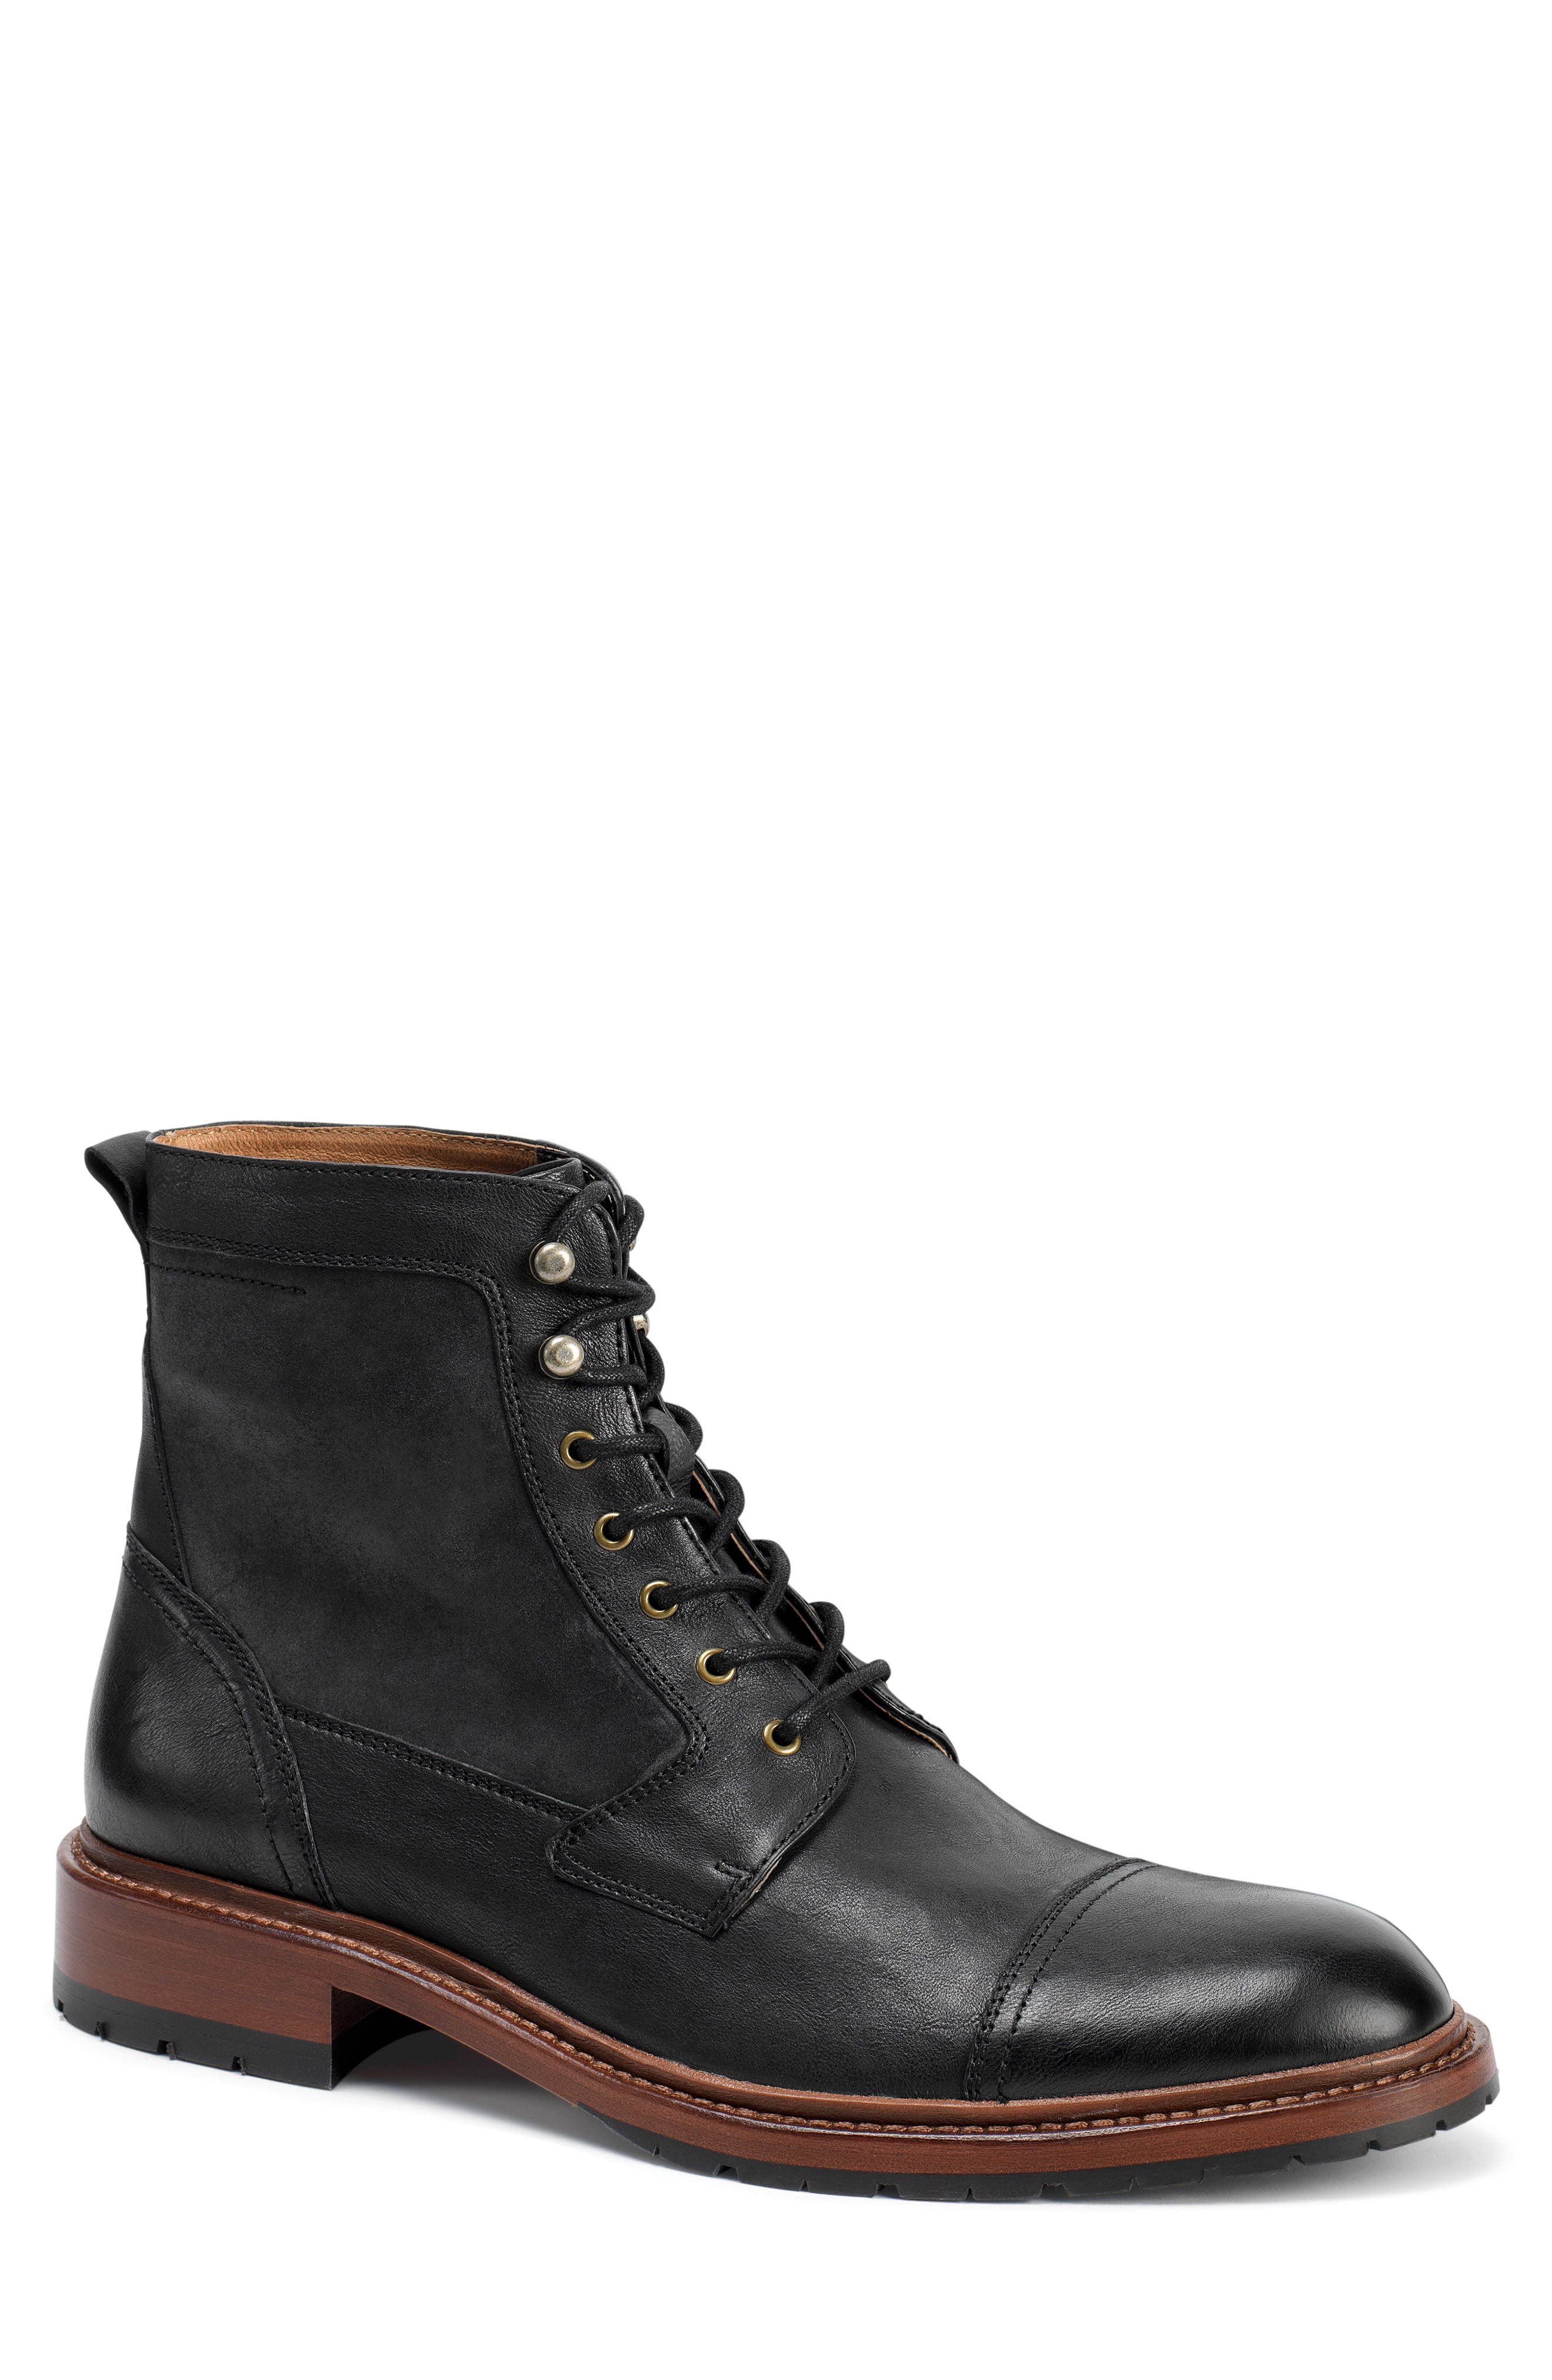 'Lowell' Cap Toe Boot,                         Main,                         color, BLACK WASHED LEATHER